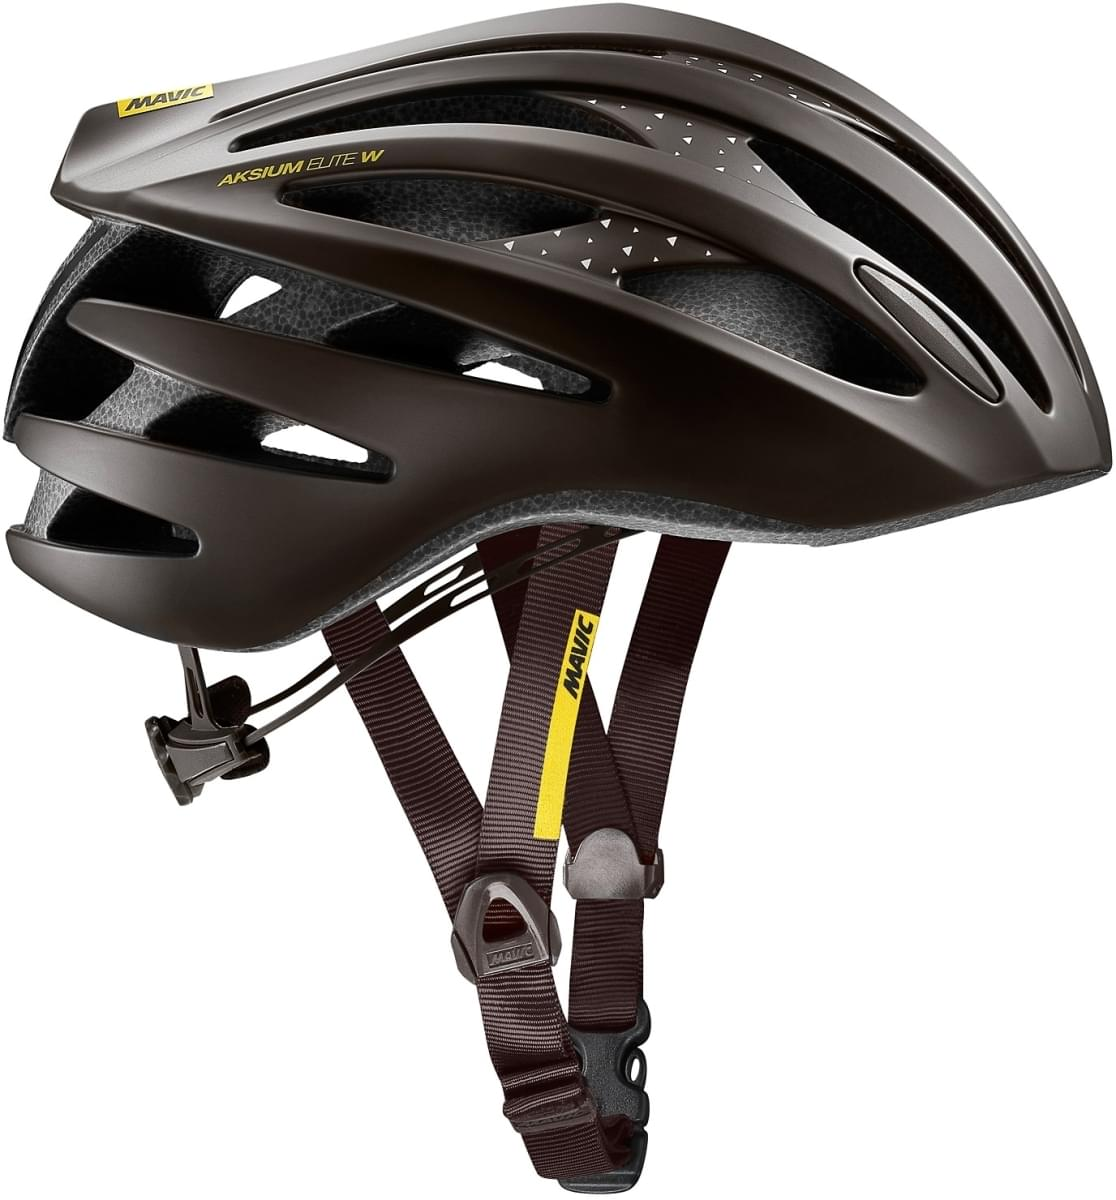 Mavic Aksium Elite Helmet W - after dark/yellow mavic M